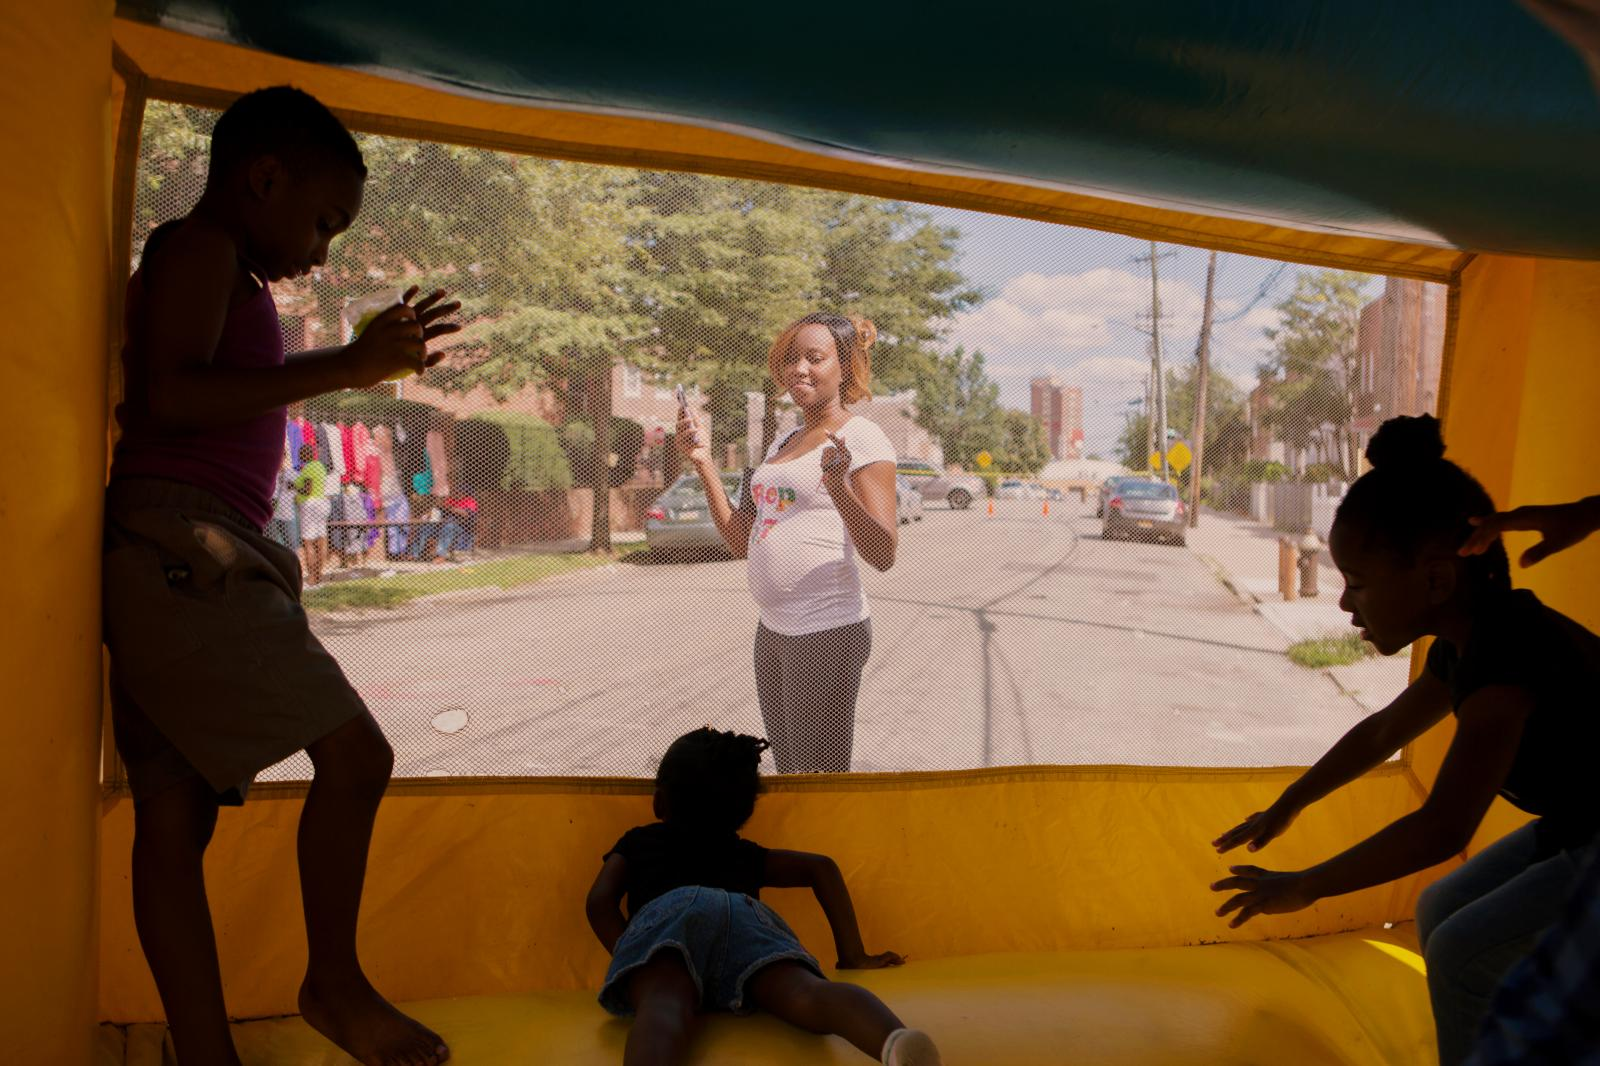 Tiffany Moreau looks out for her kid playing inside the inflatable bounce house at the block party hosted by The Shiloh Baptist Church of Jamaica in Queens, New York. Moreau mentions that she loves to see the community gather together.